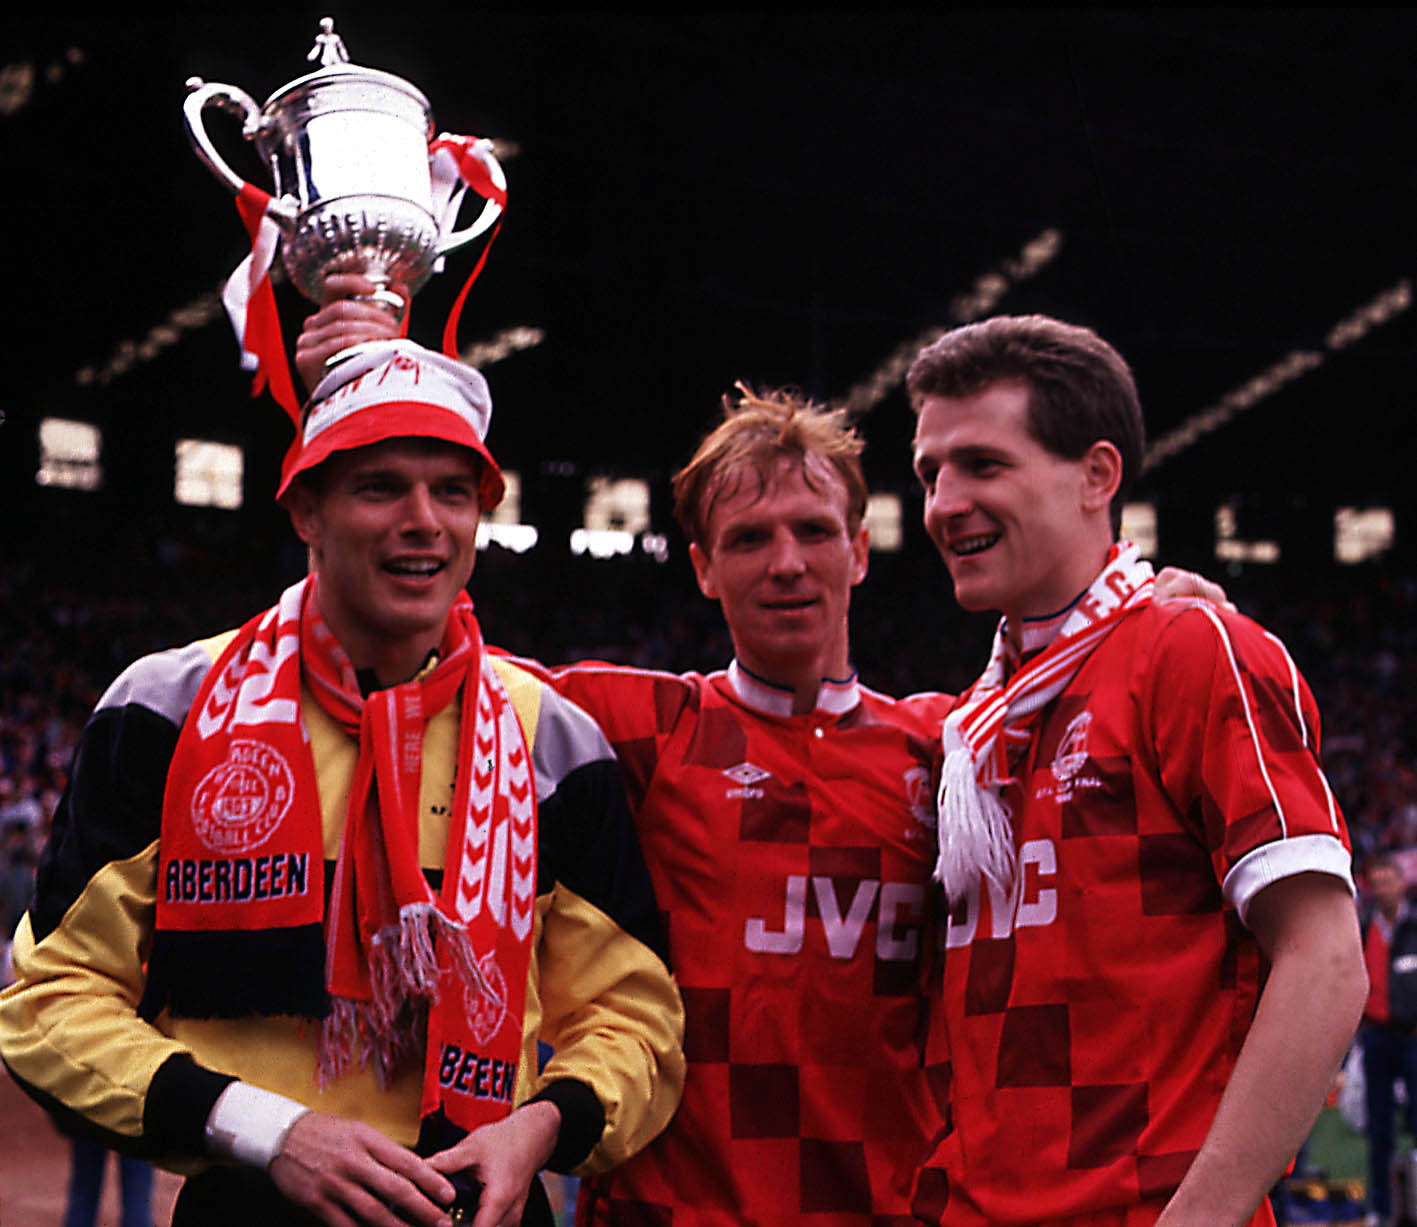 Brian Irvine, right, with Theo Snelders, Alex McLeish and the Scottish Cup.